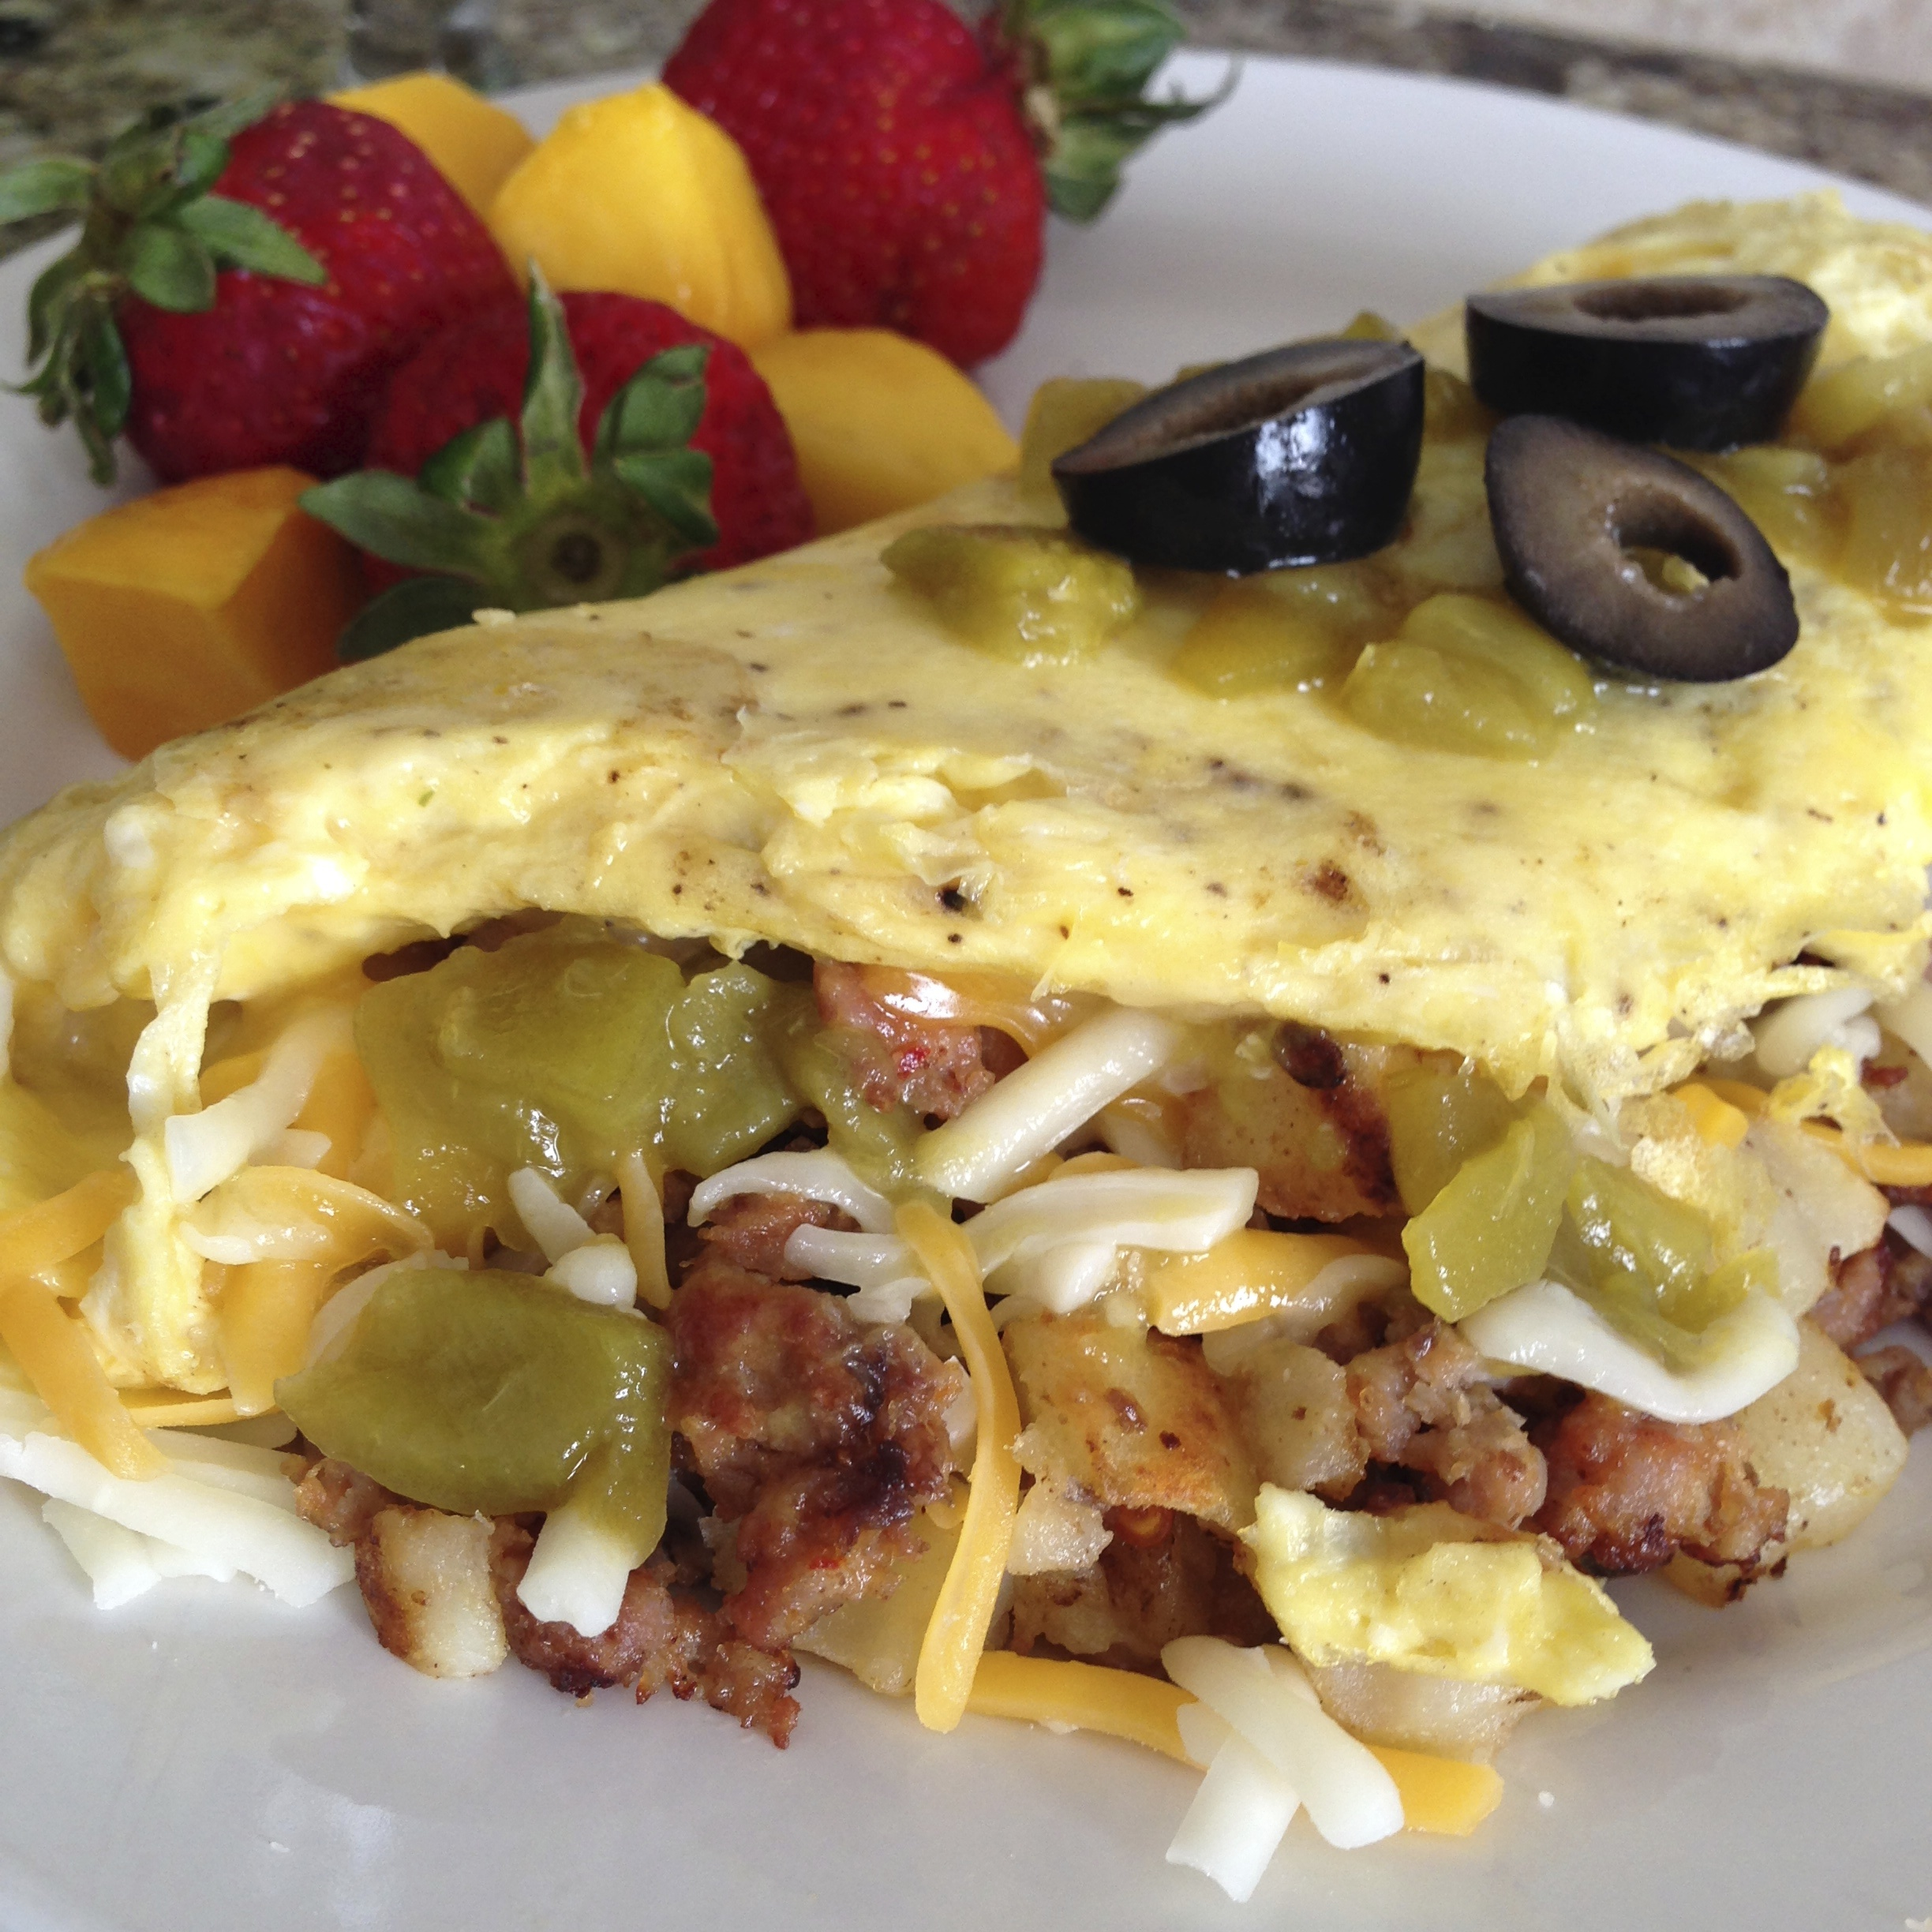 Sausage and Potato Omelet with Green Chili